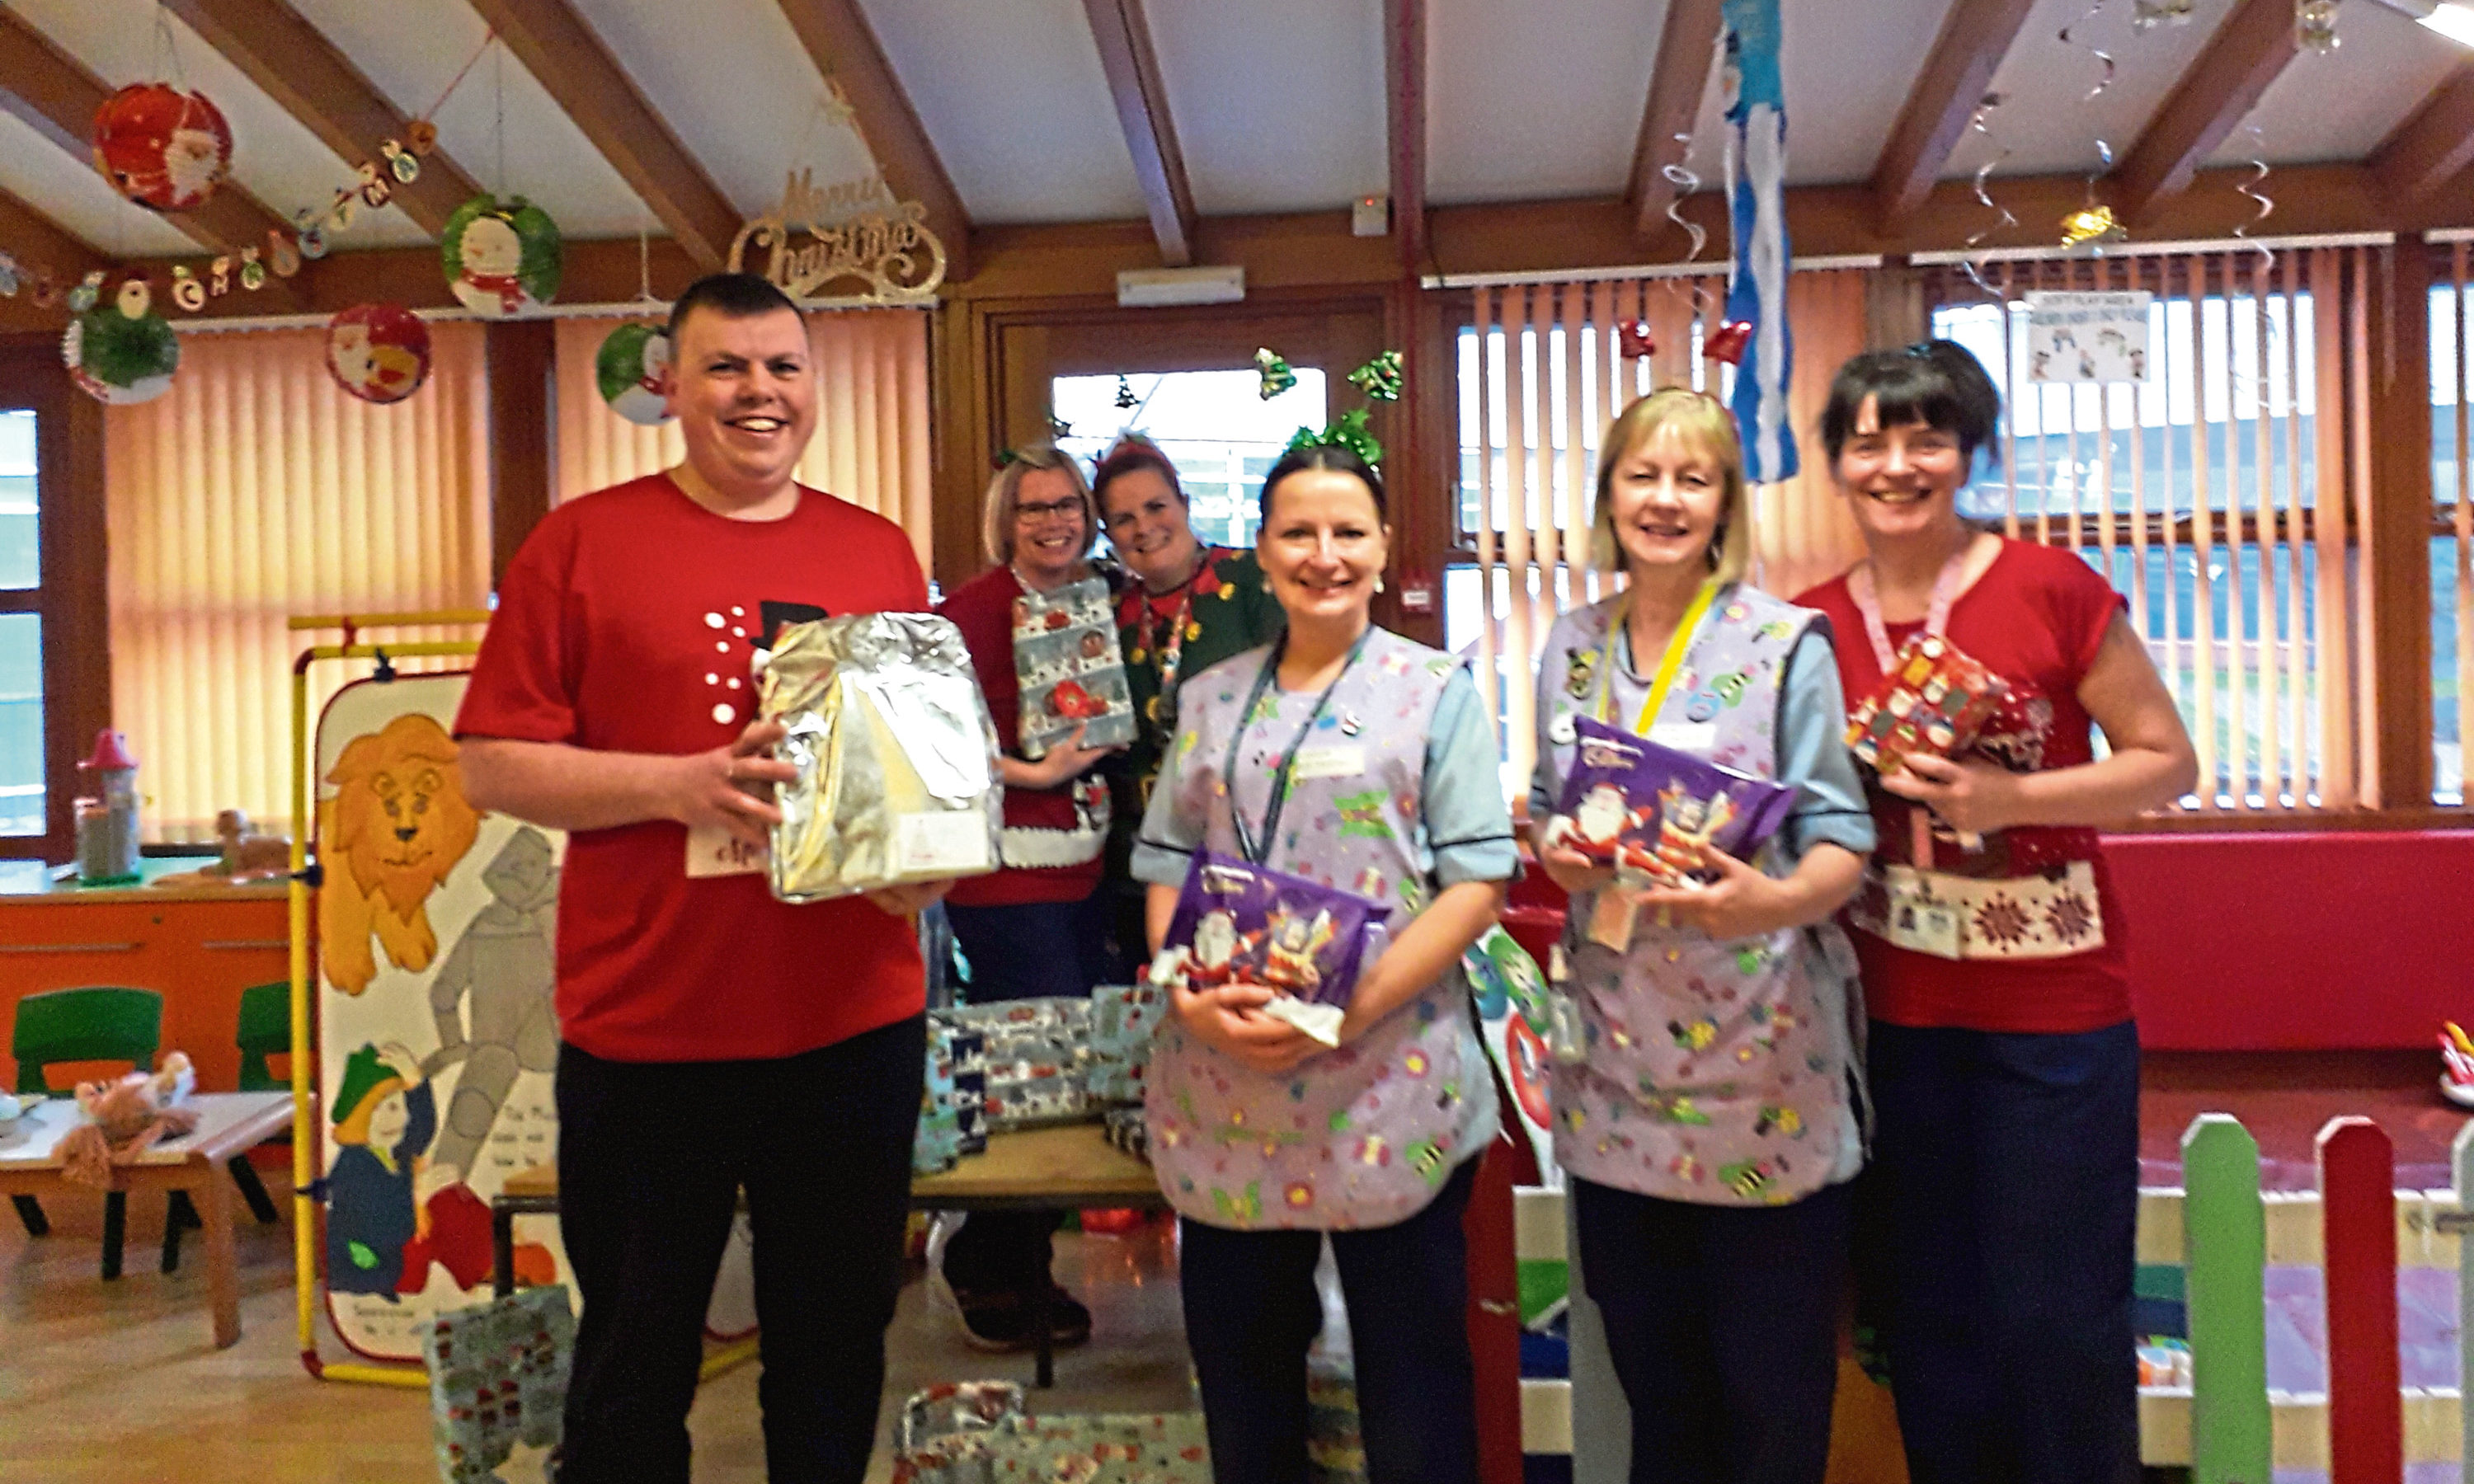 Some of the hotel staff with the gifts and selection boxes.